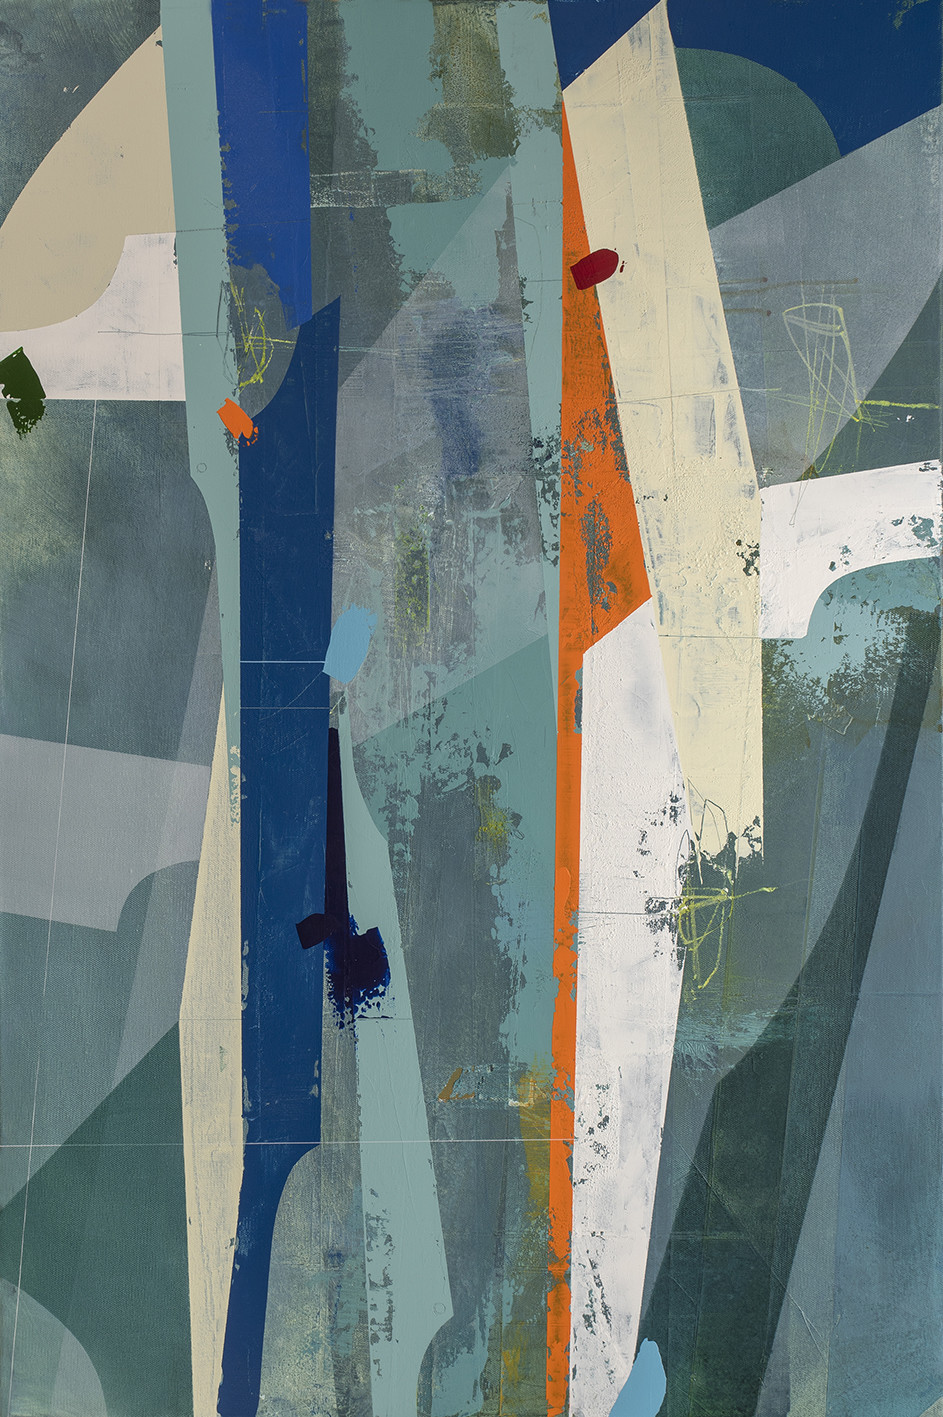 """<span class=""""link fancybox-details-link""""><a href=""""/artists/77-andrew-bird/works/6205-andrew-bird-standing-forms-2019/"""">View Detail Page</a></span><div class=""""artist""""><strong>Andrew Bird</strong></div> <div class=""""title""""><em>Standing Forms</em>, 2019</div> <div class=""""signed_and_dated"""">signed, titled and dated on reverse</div> <div class=""""medium"""">acrylic on canvas</div> <div class=""""dimensions"""">h 91 x w 61 cm<br /> 35 7/8 x 24 1/8 in</div><div class=""""price"""">£2,750.00</div><div class=""""copyright_line"""">Own Art: £ 250 x 10 Months, 0% APR + £250</div>"""